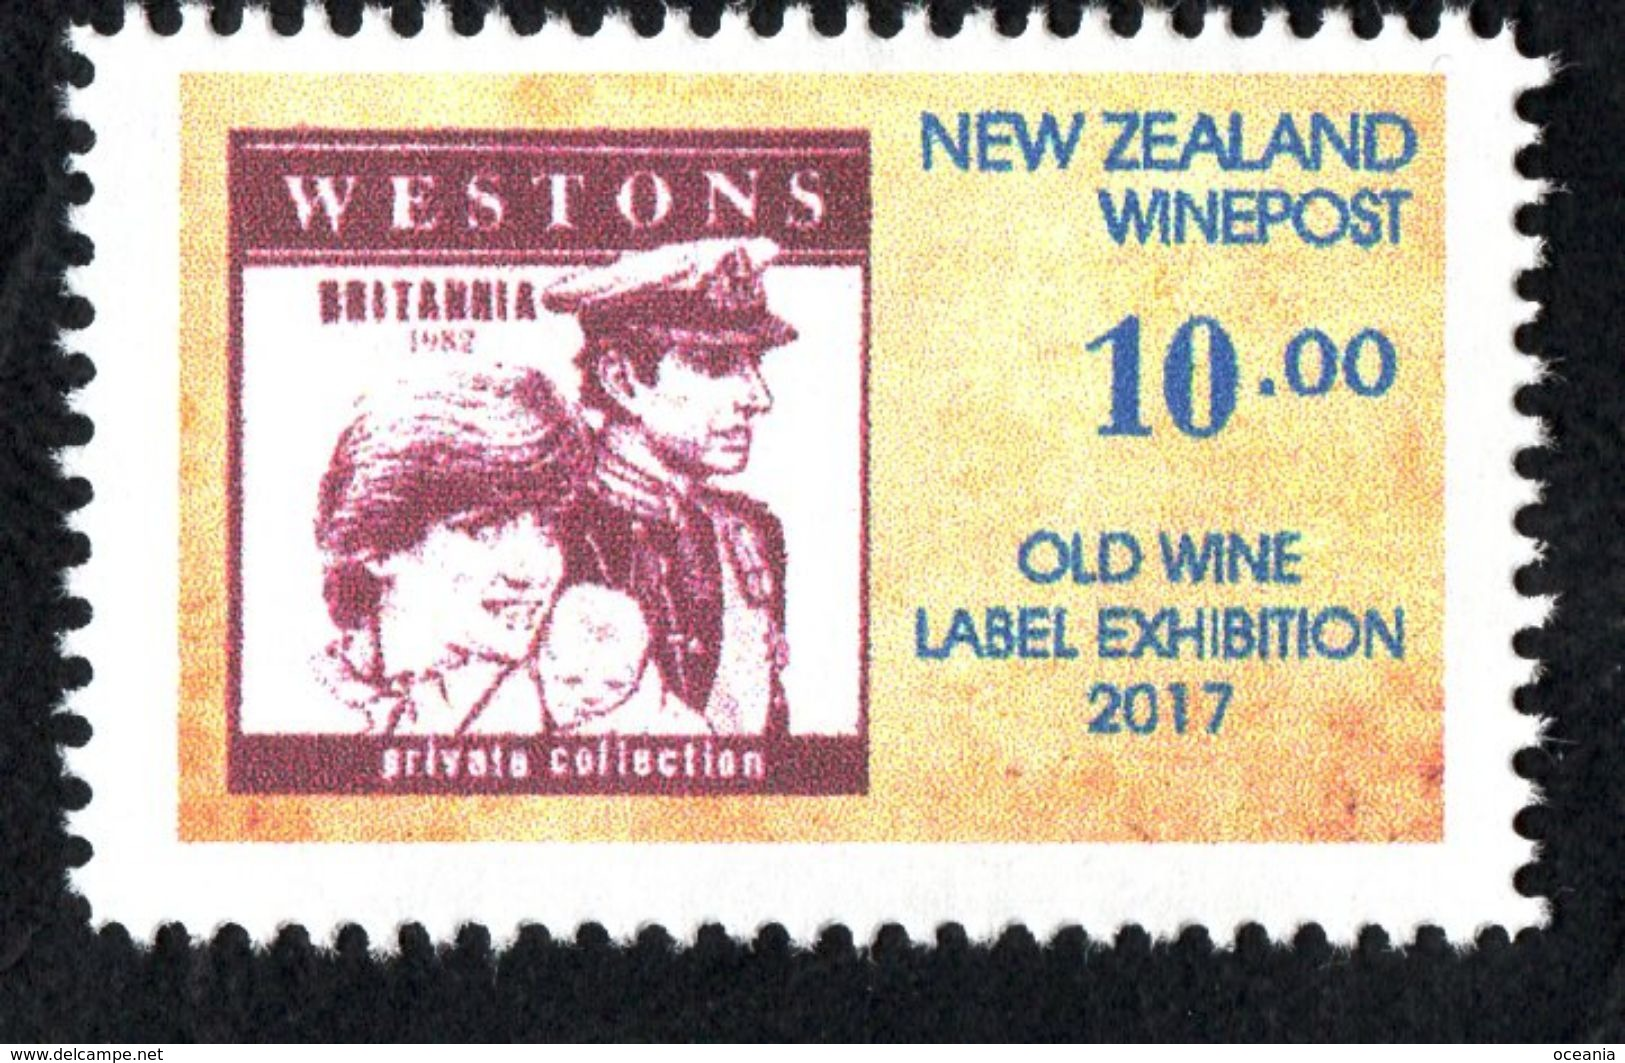 New Zealand Wine Post -Old Wine Old Labels Exhibition Issue - New Zealand